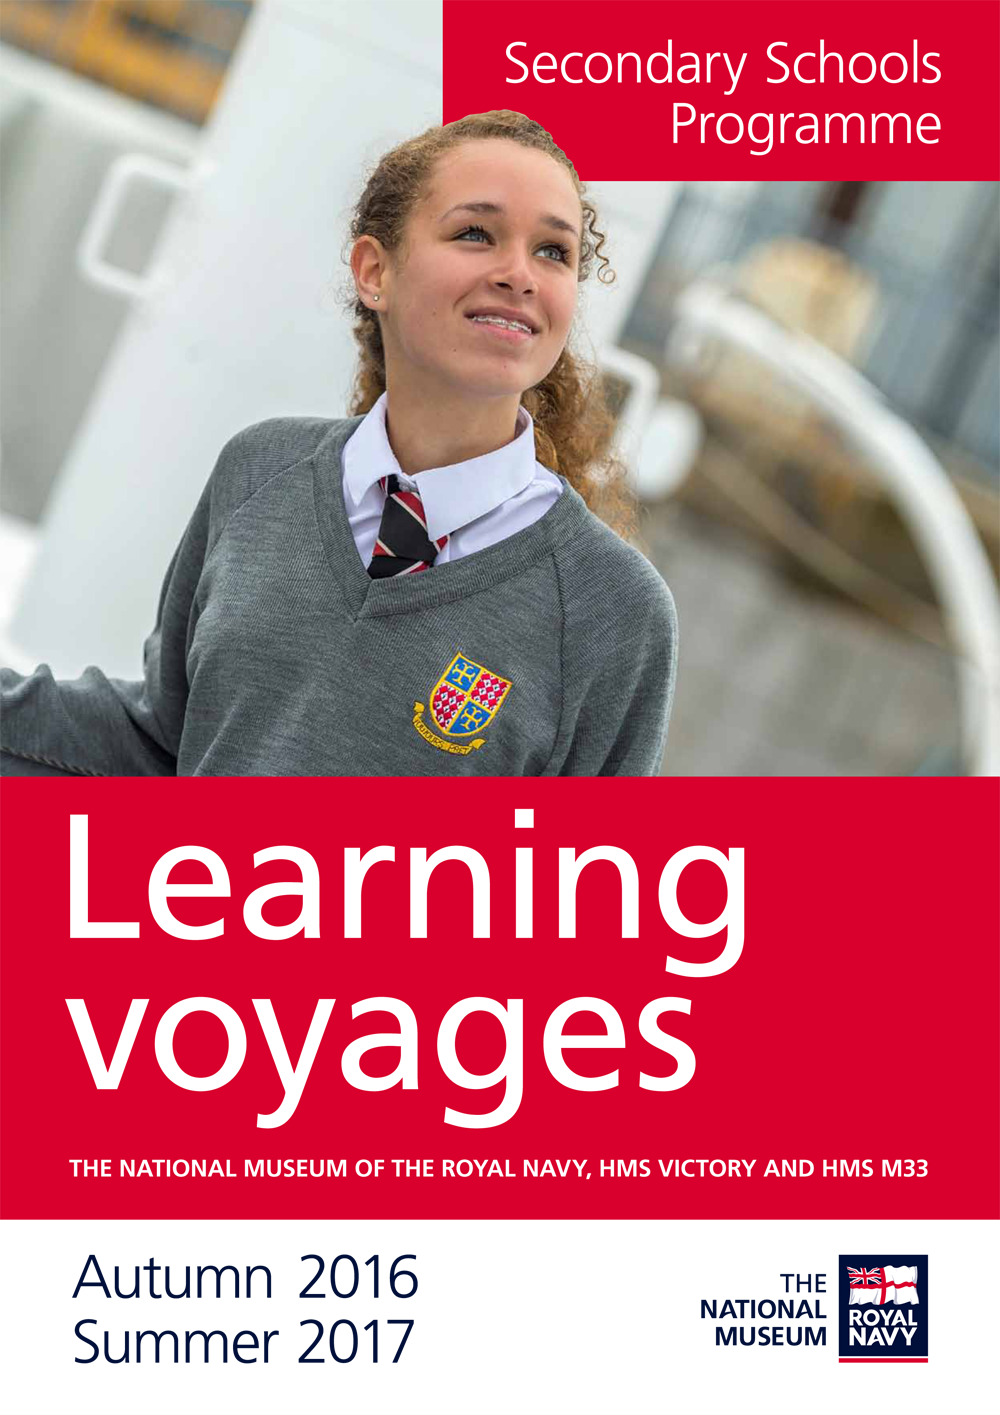 NMRN Secondary Learning Voyages 2016 17